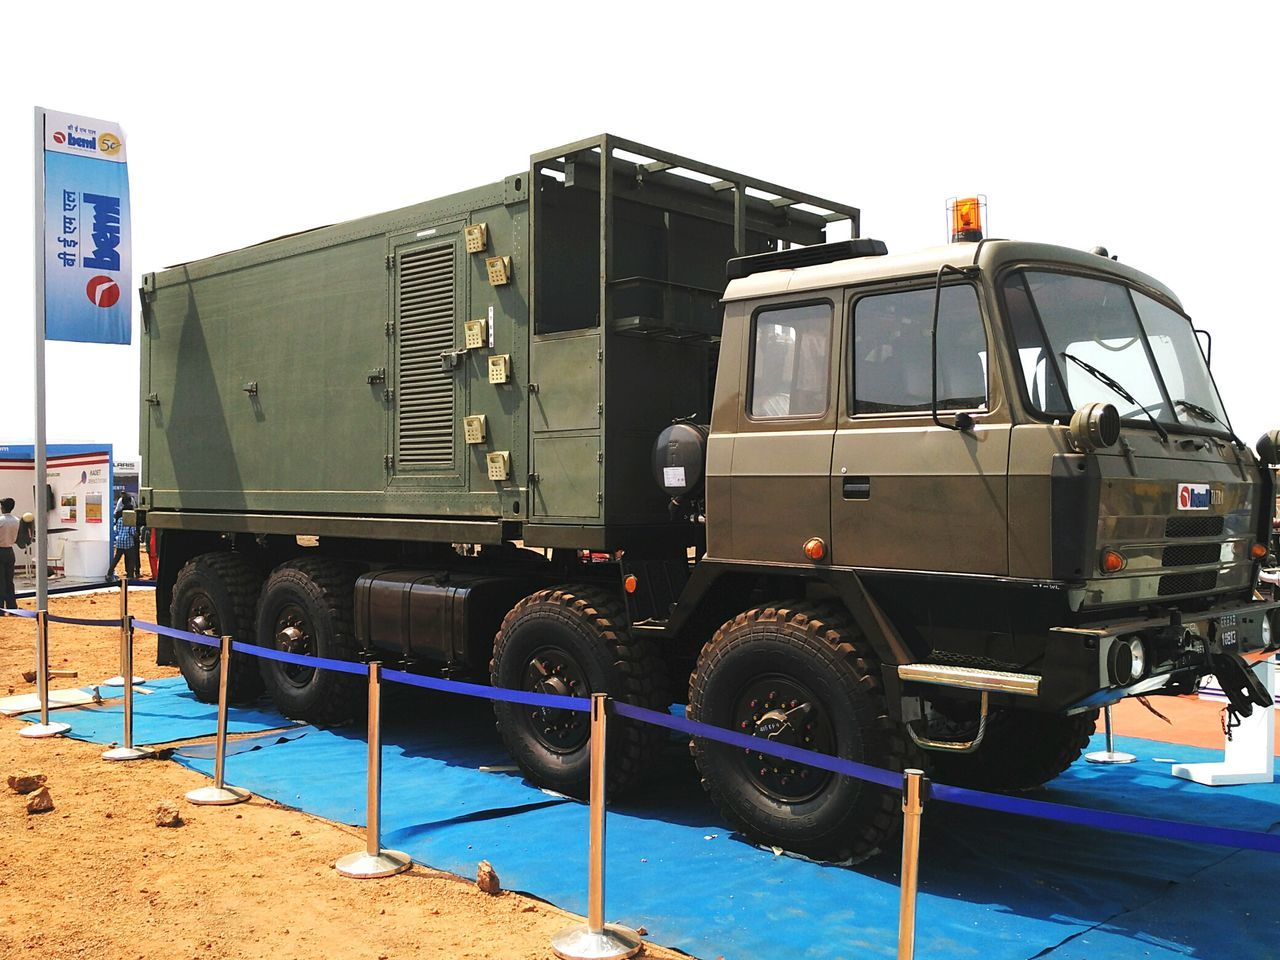 Army Truck kept for display at Defexpo India 2016 in Goa. Defexpo Defexpogoa2016 Defence Exposition Indian Army Army Army Truck Beml Automobile Engineering Vehicle Exterior Outdoors Truck